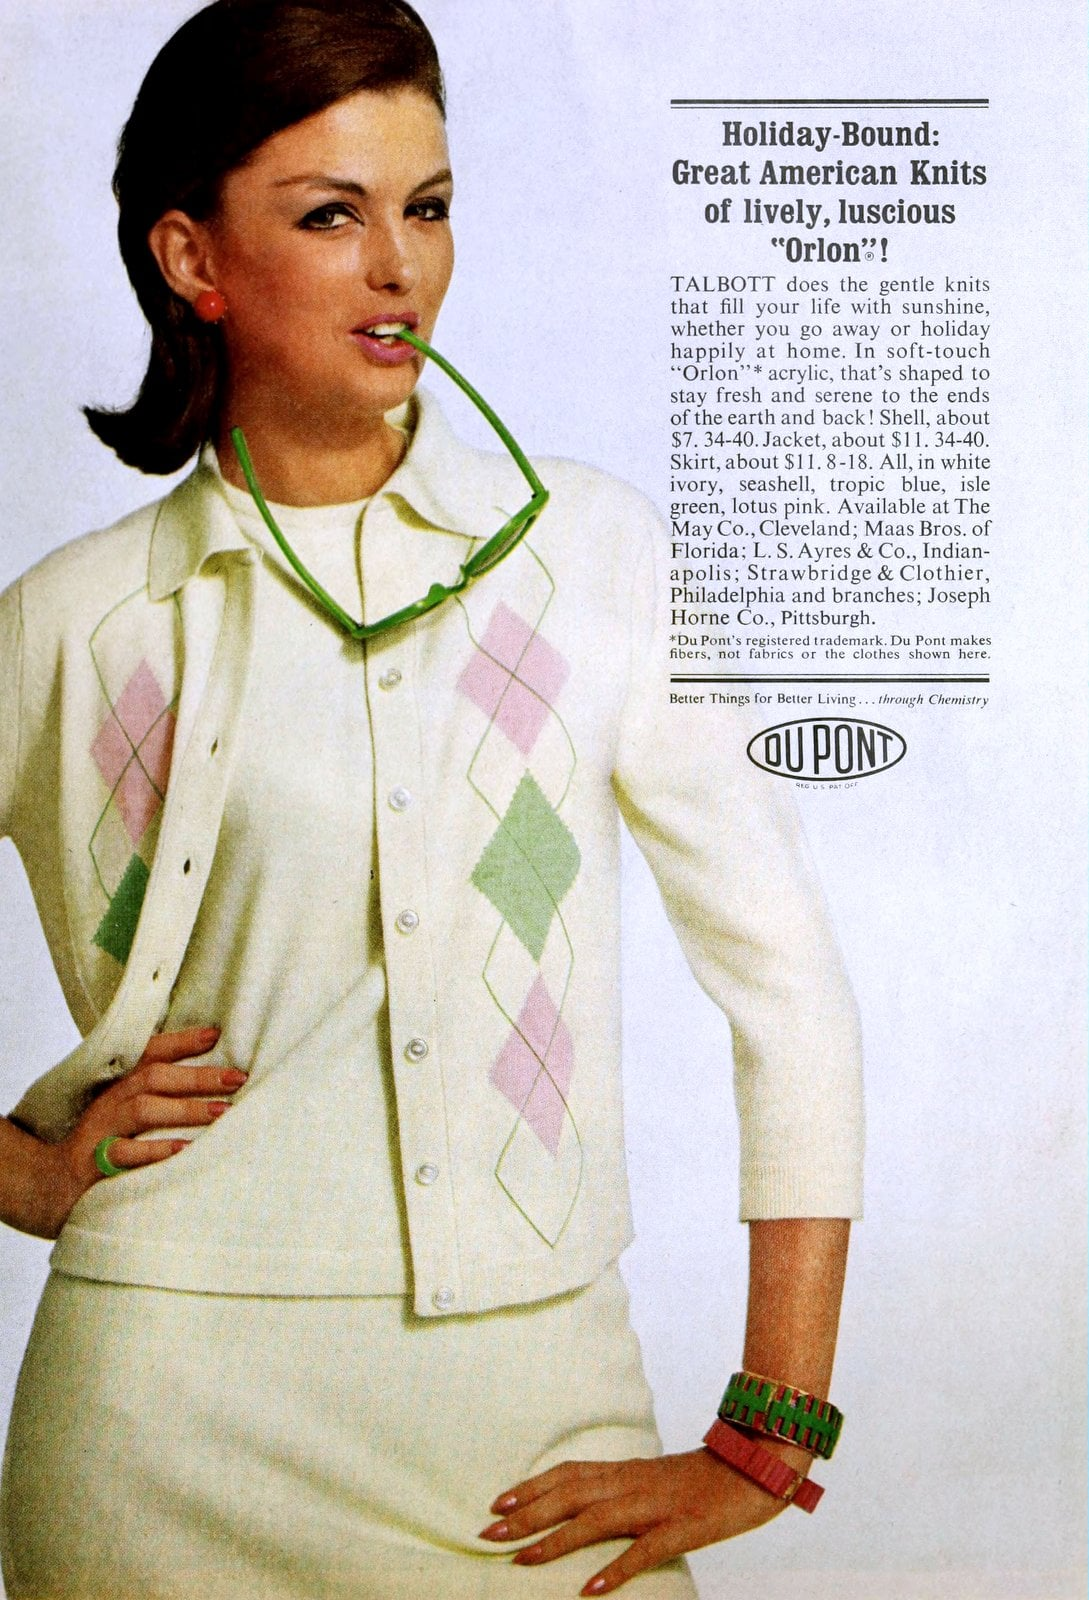 Pink and green argyle pattern vintage knit sweater on white (1964)